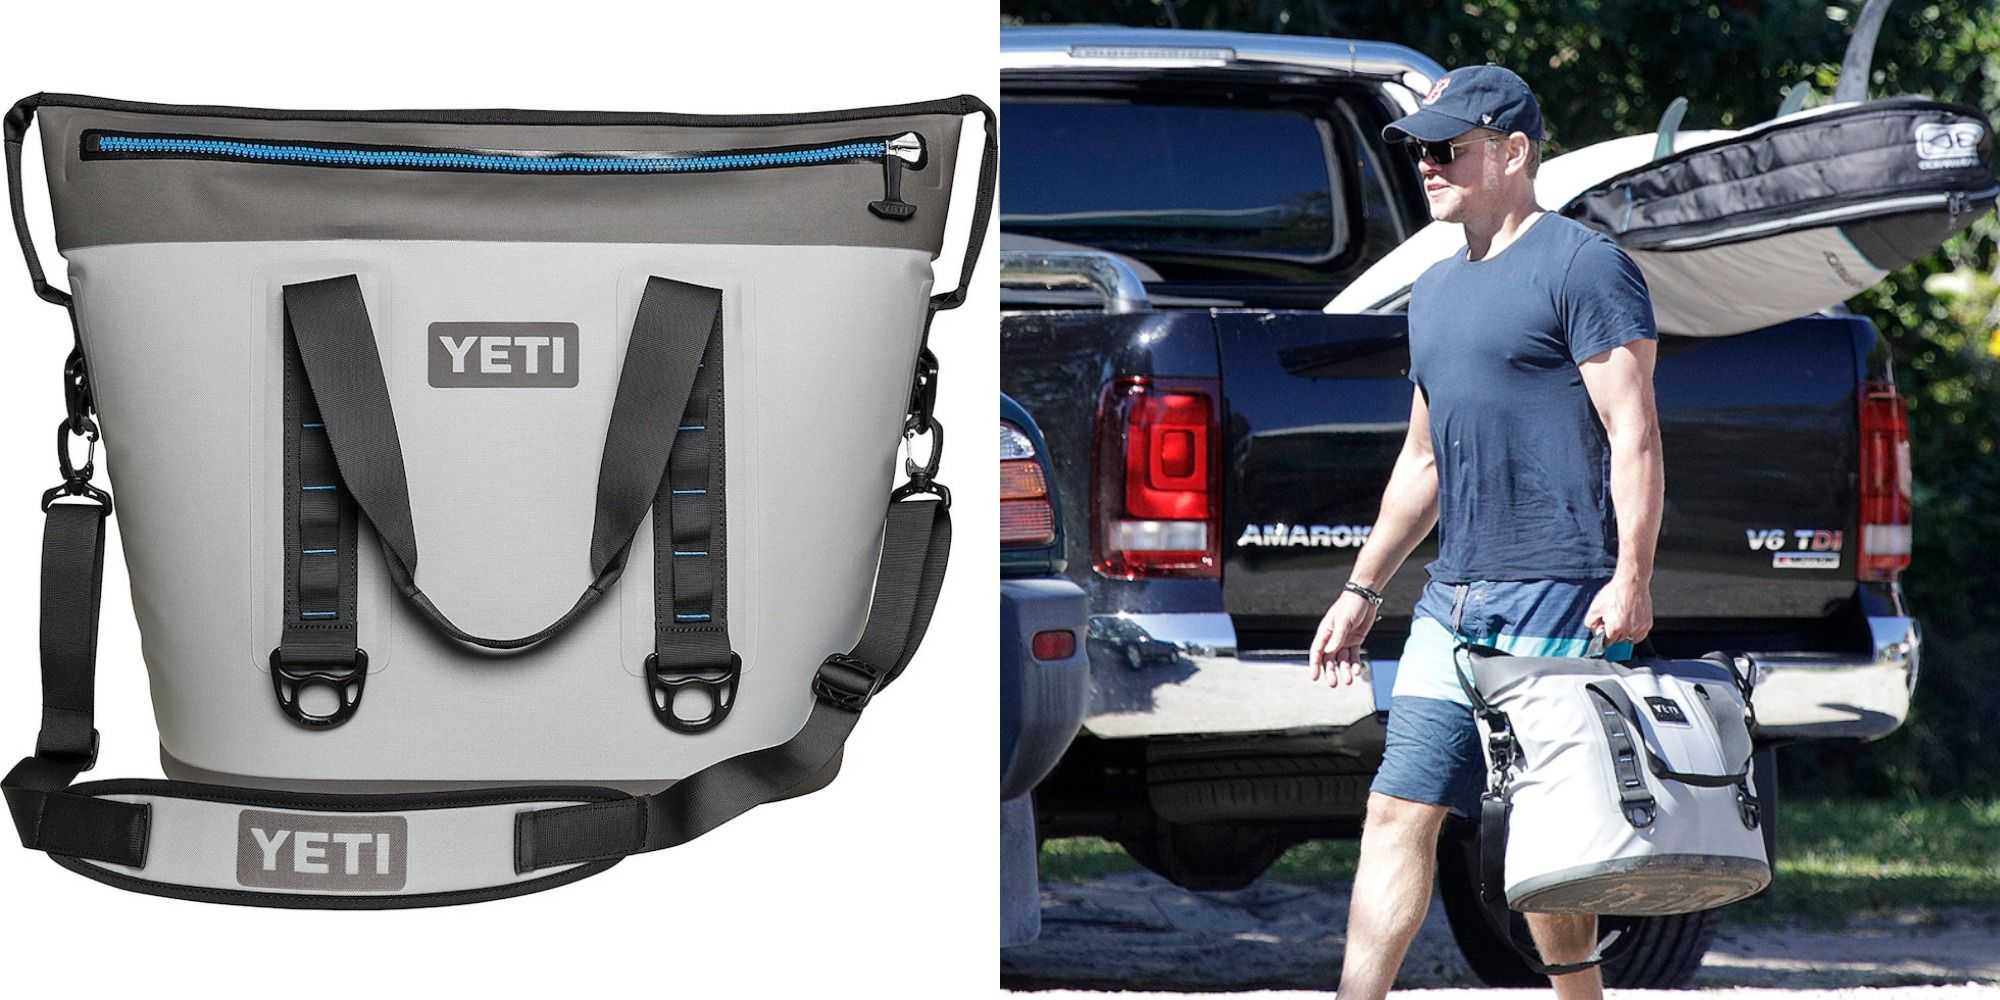 Yeti Portable Cooler Bag